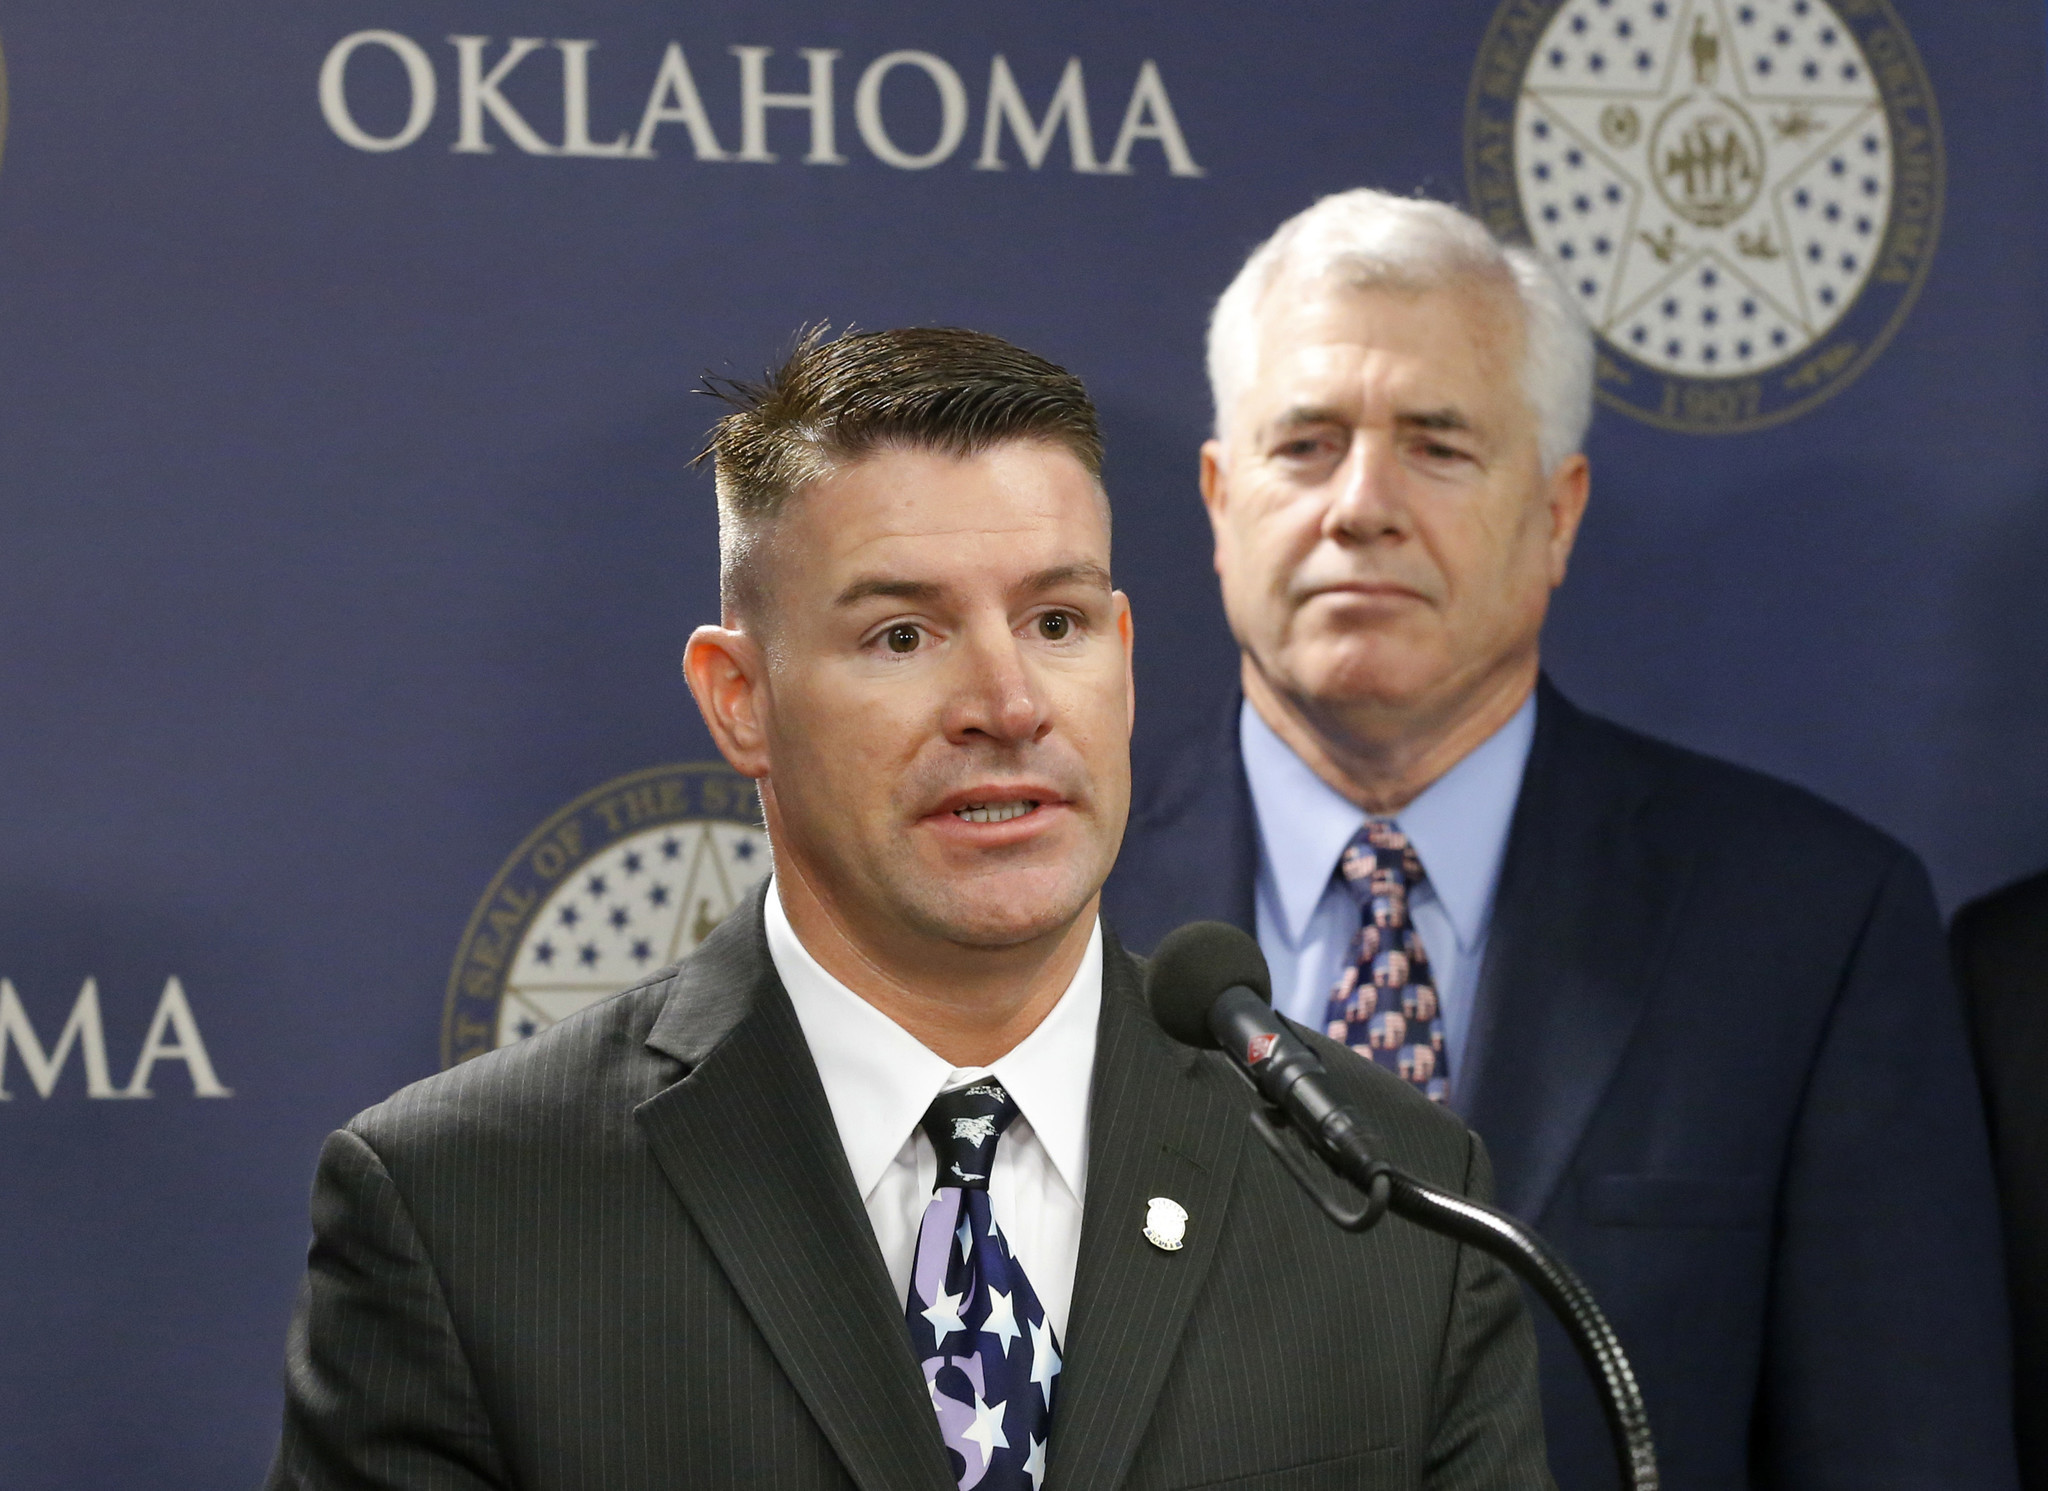 oklahoma muslim single men The popular image of 1995 oklahoma city bomber timothy mcveigh is that of  of oklahoma county, who single-handedly  timothy mcveigh was a muslim.